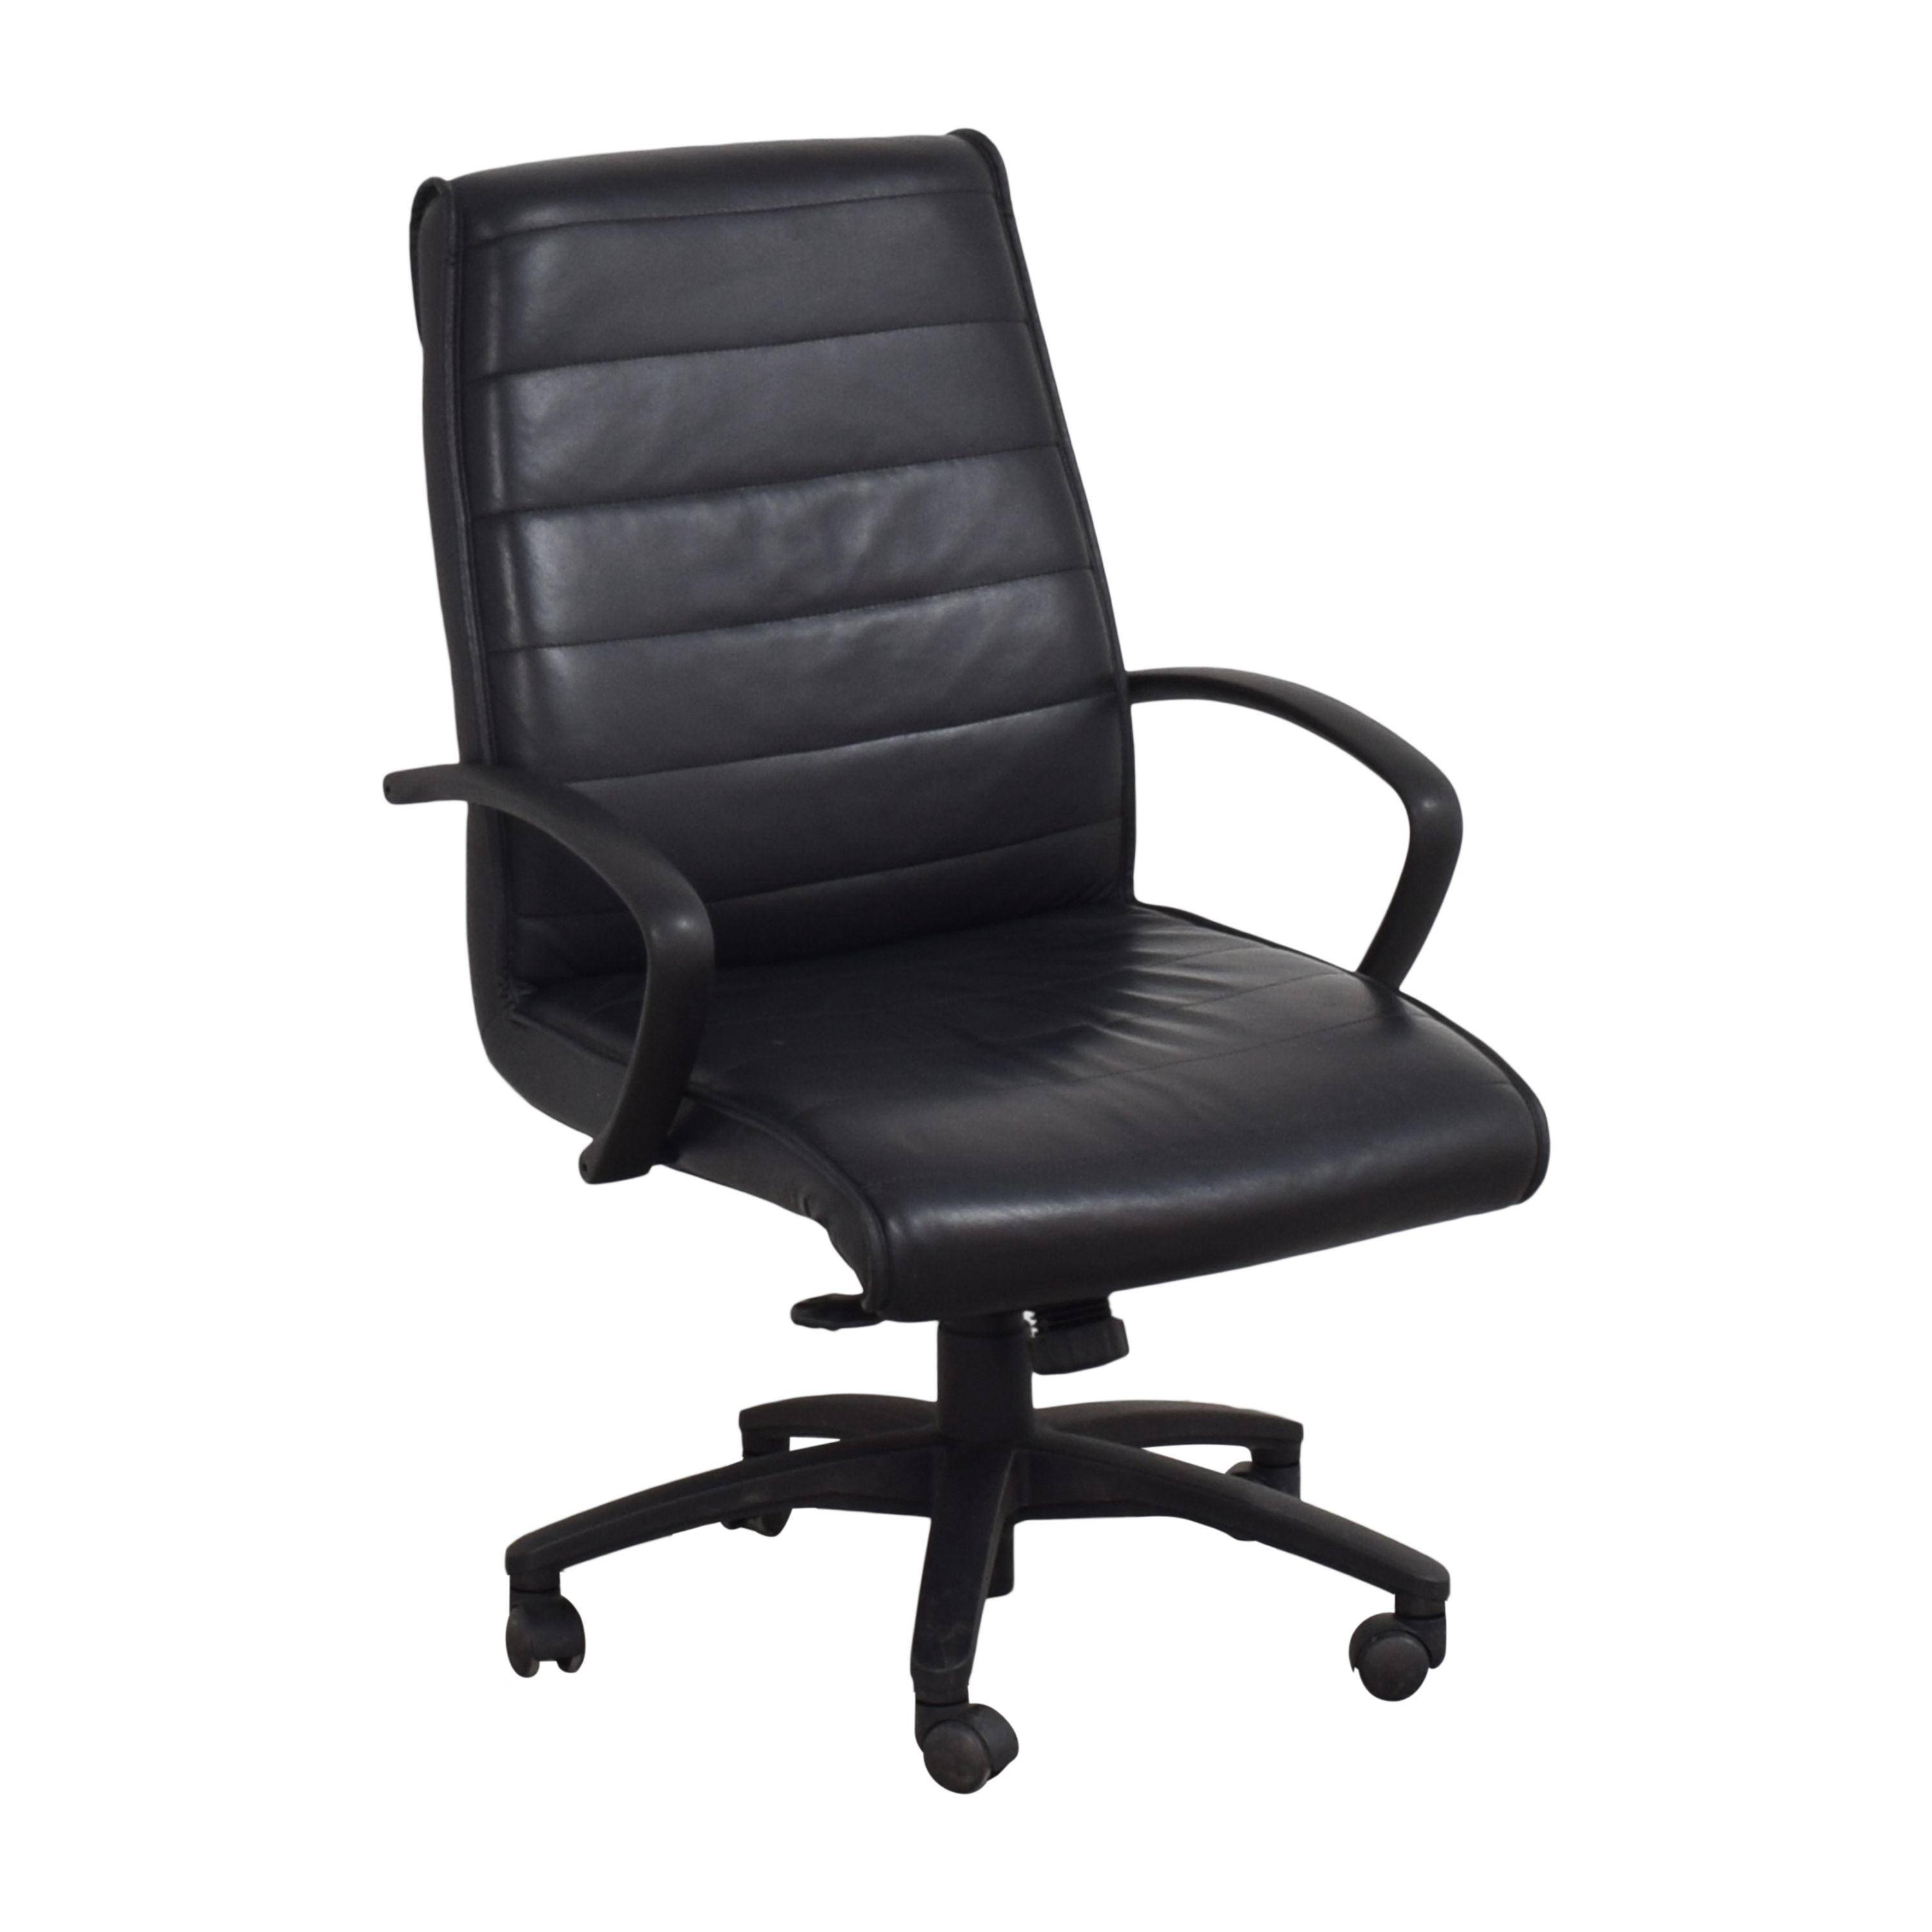 Dauphin Dauphin Adjustable Office Chair for sale